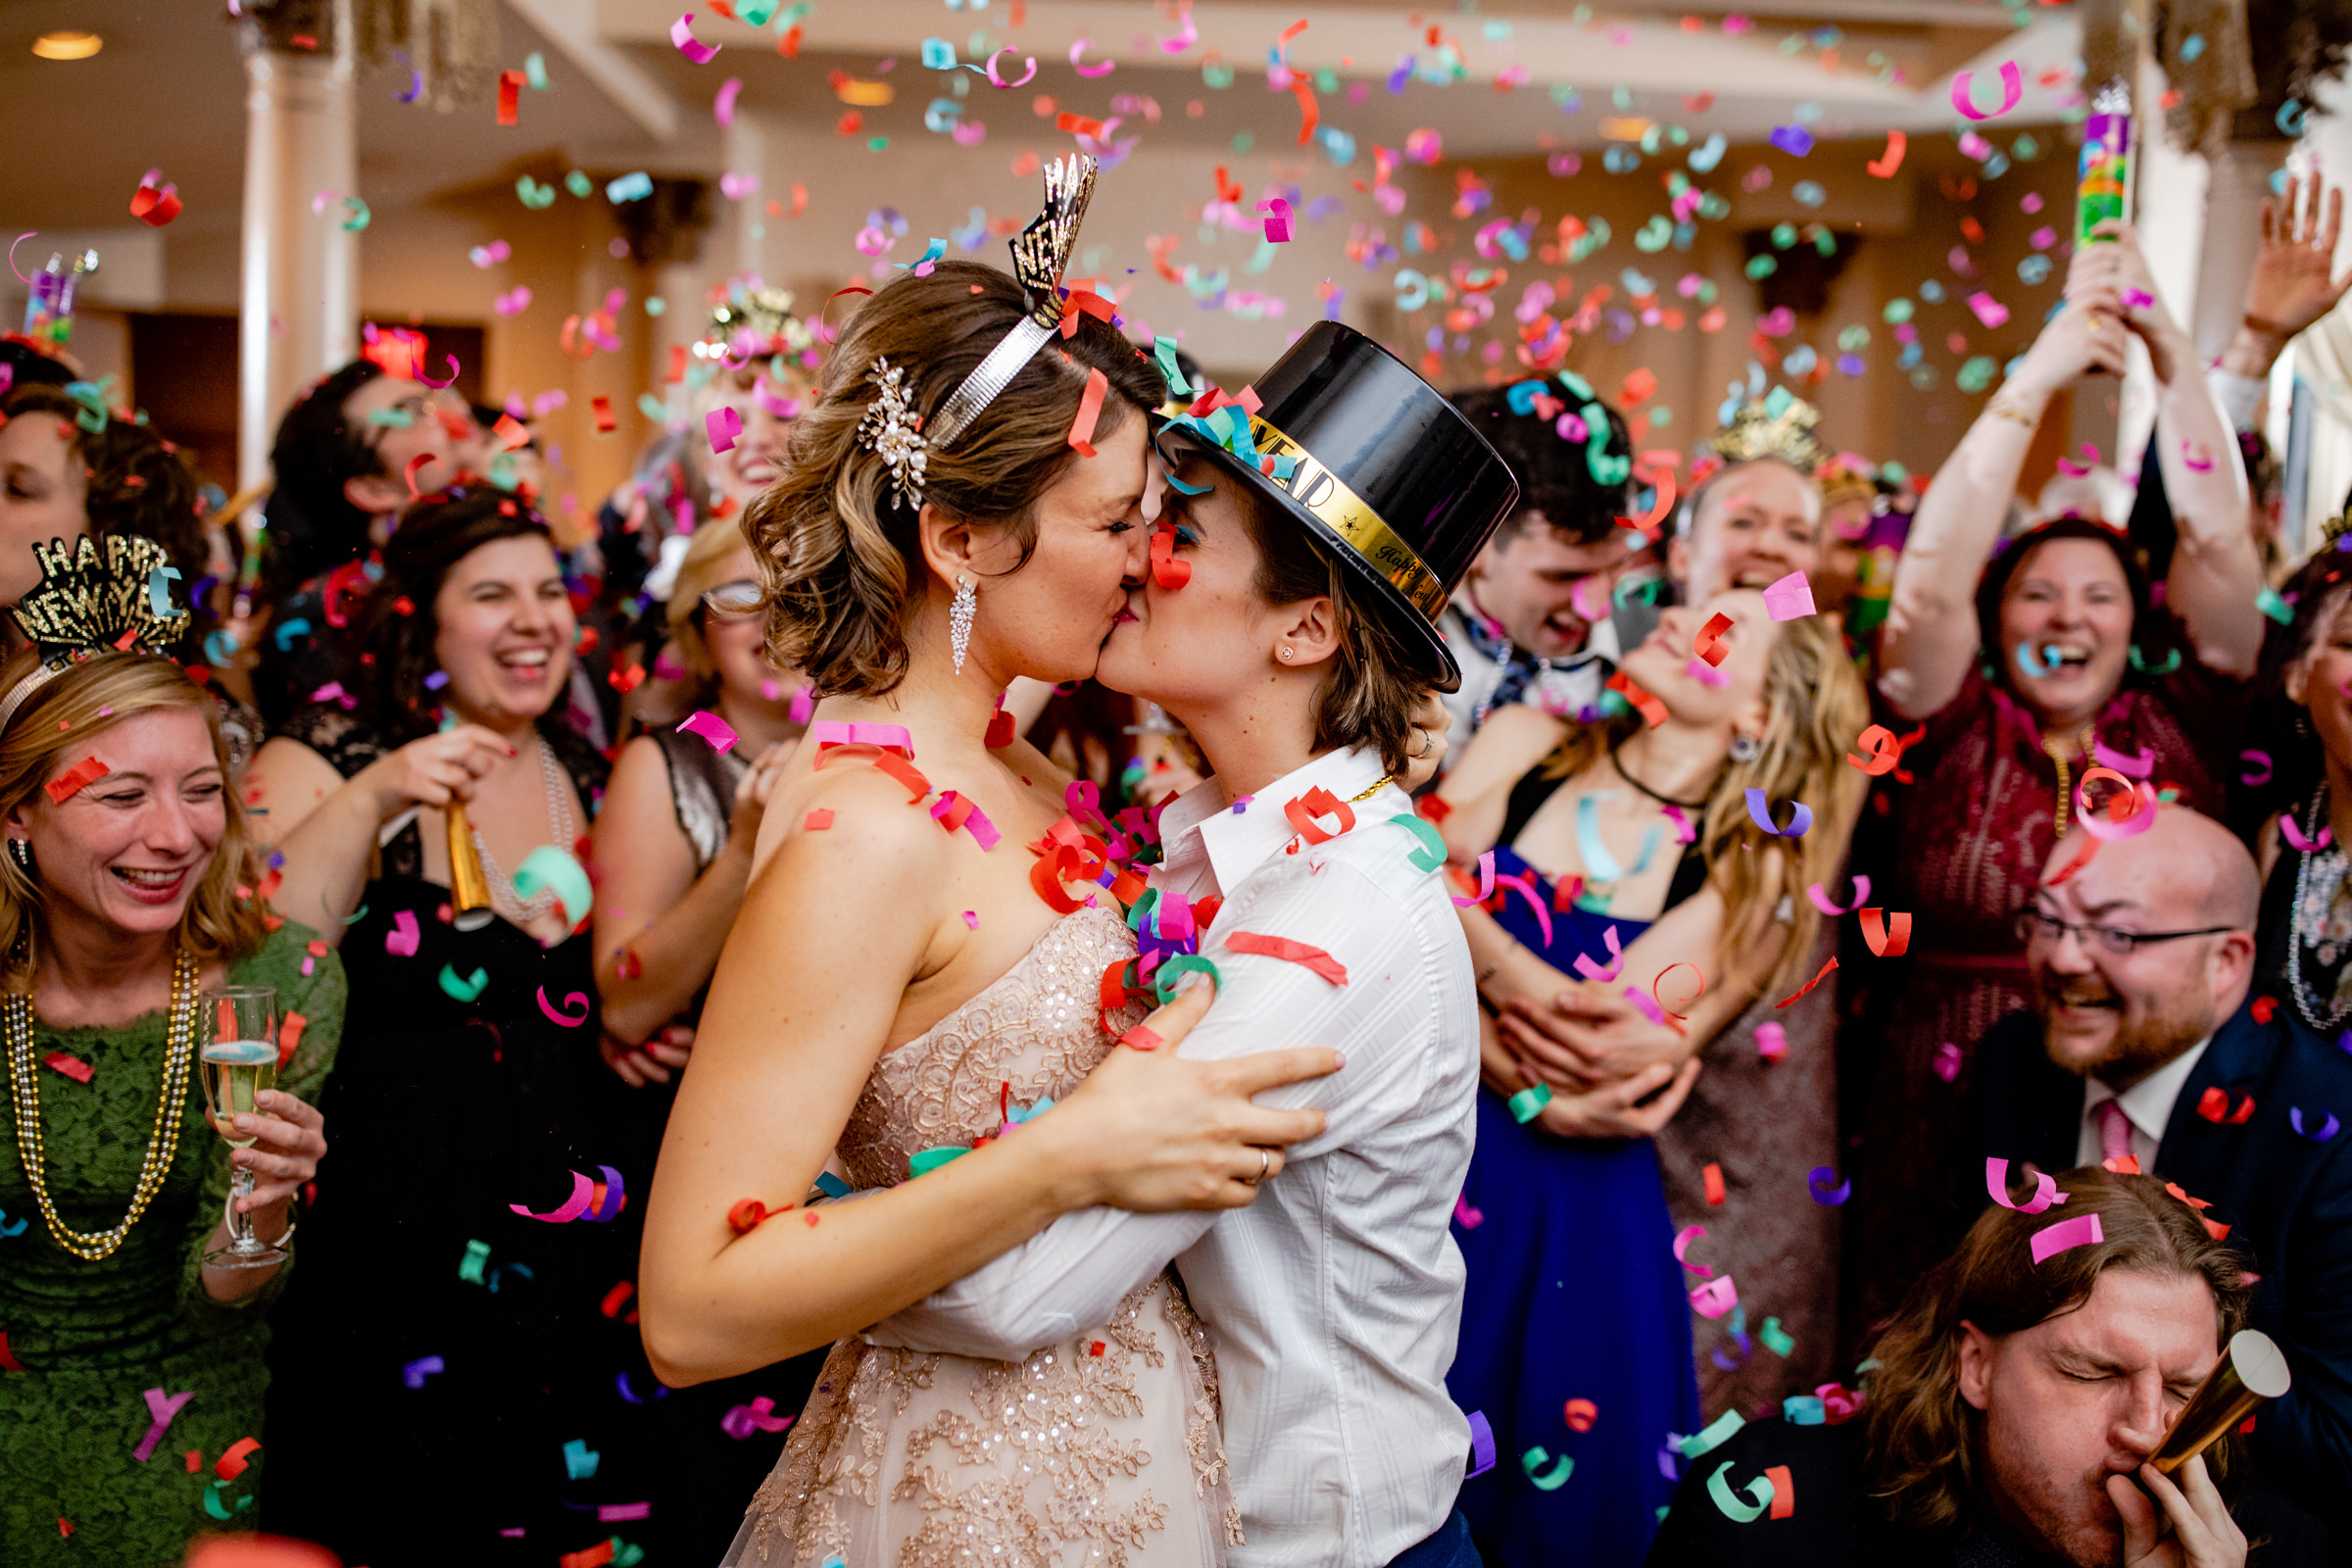 two brides kiss under confetti - New Year's eve wedding photo by Bee Two Sweet